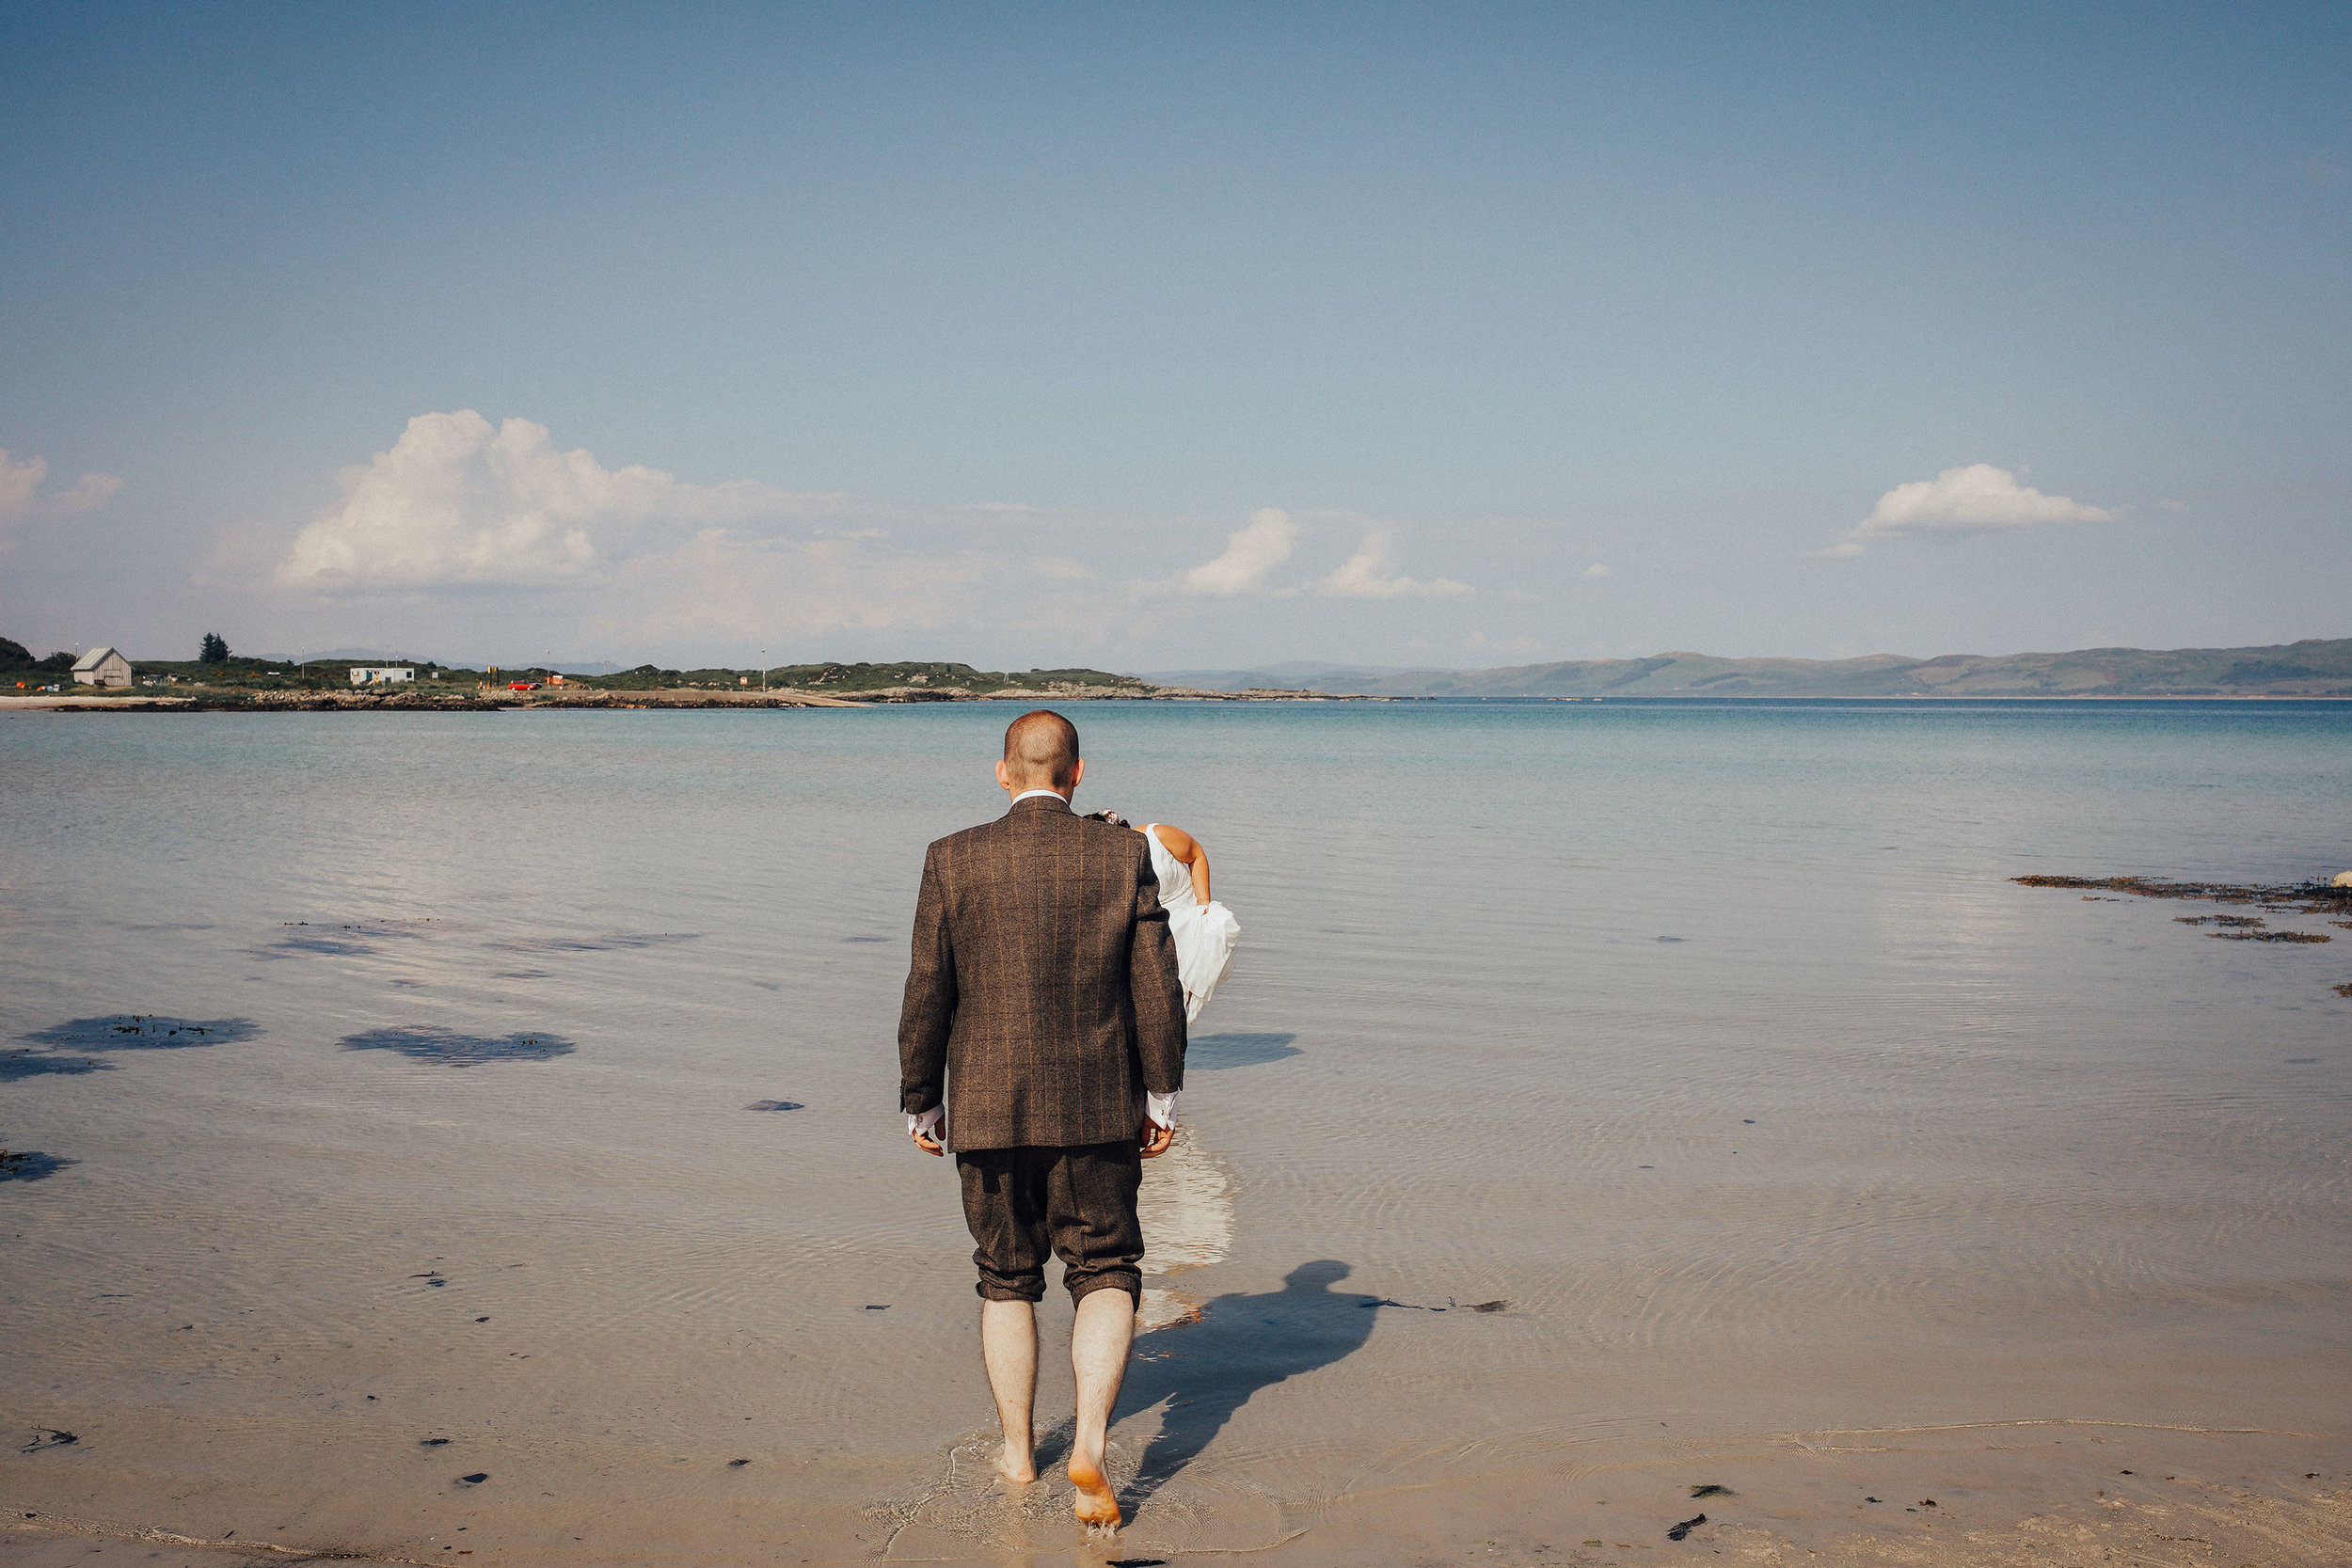 SCOTTISH_ELOPEMENT_PHOTOGRAPHER_PJ_PHILLIPS_PHOTOGRAPHY_130.jpg